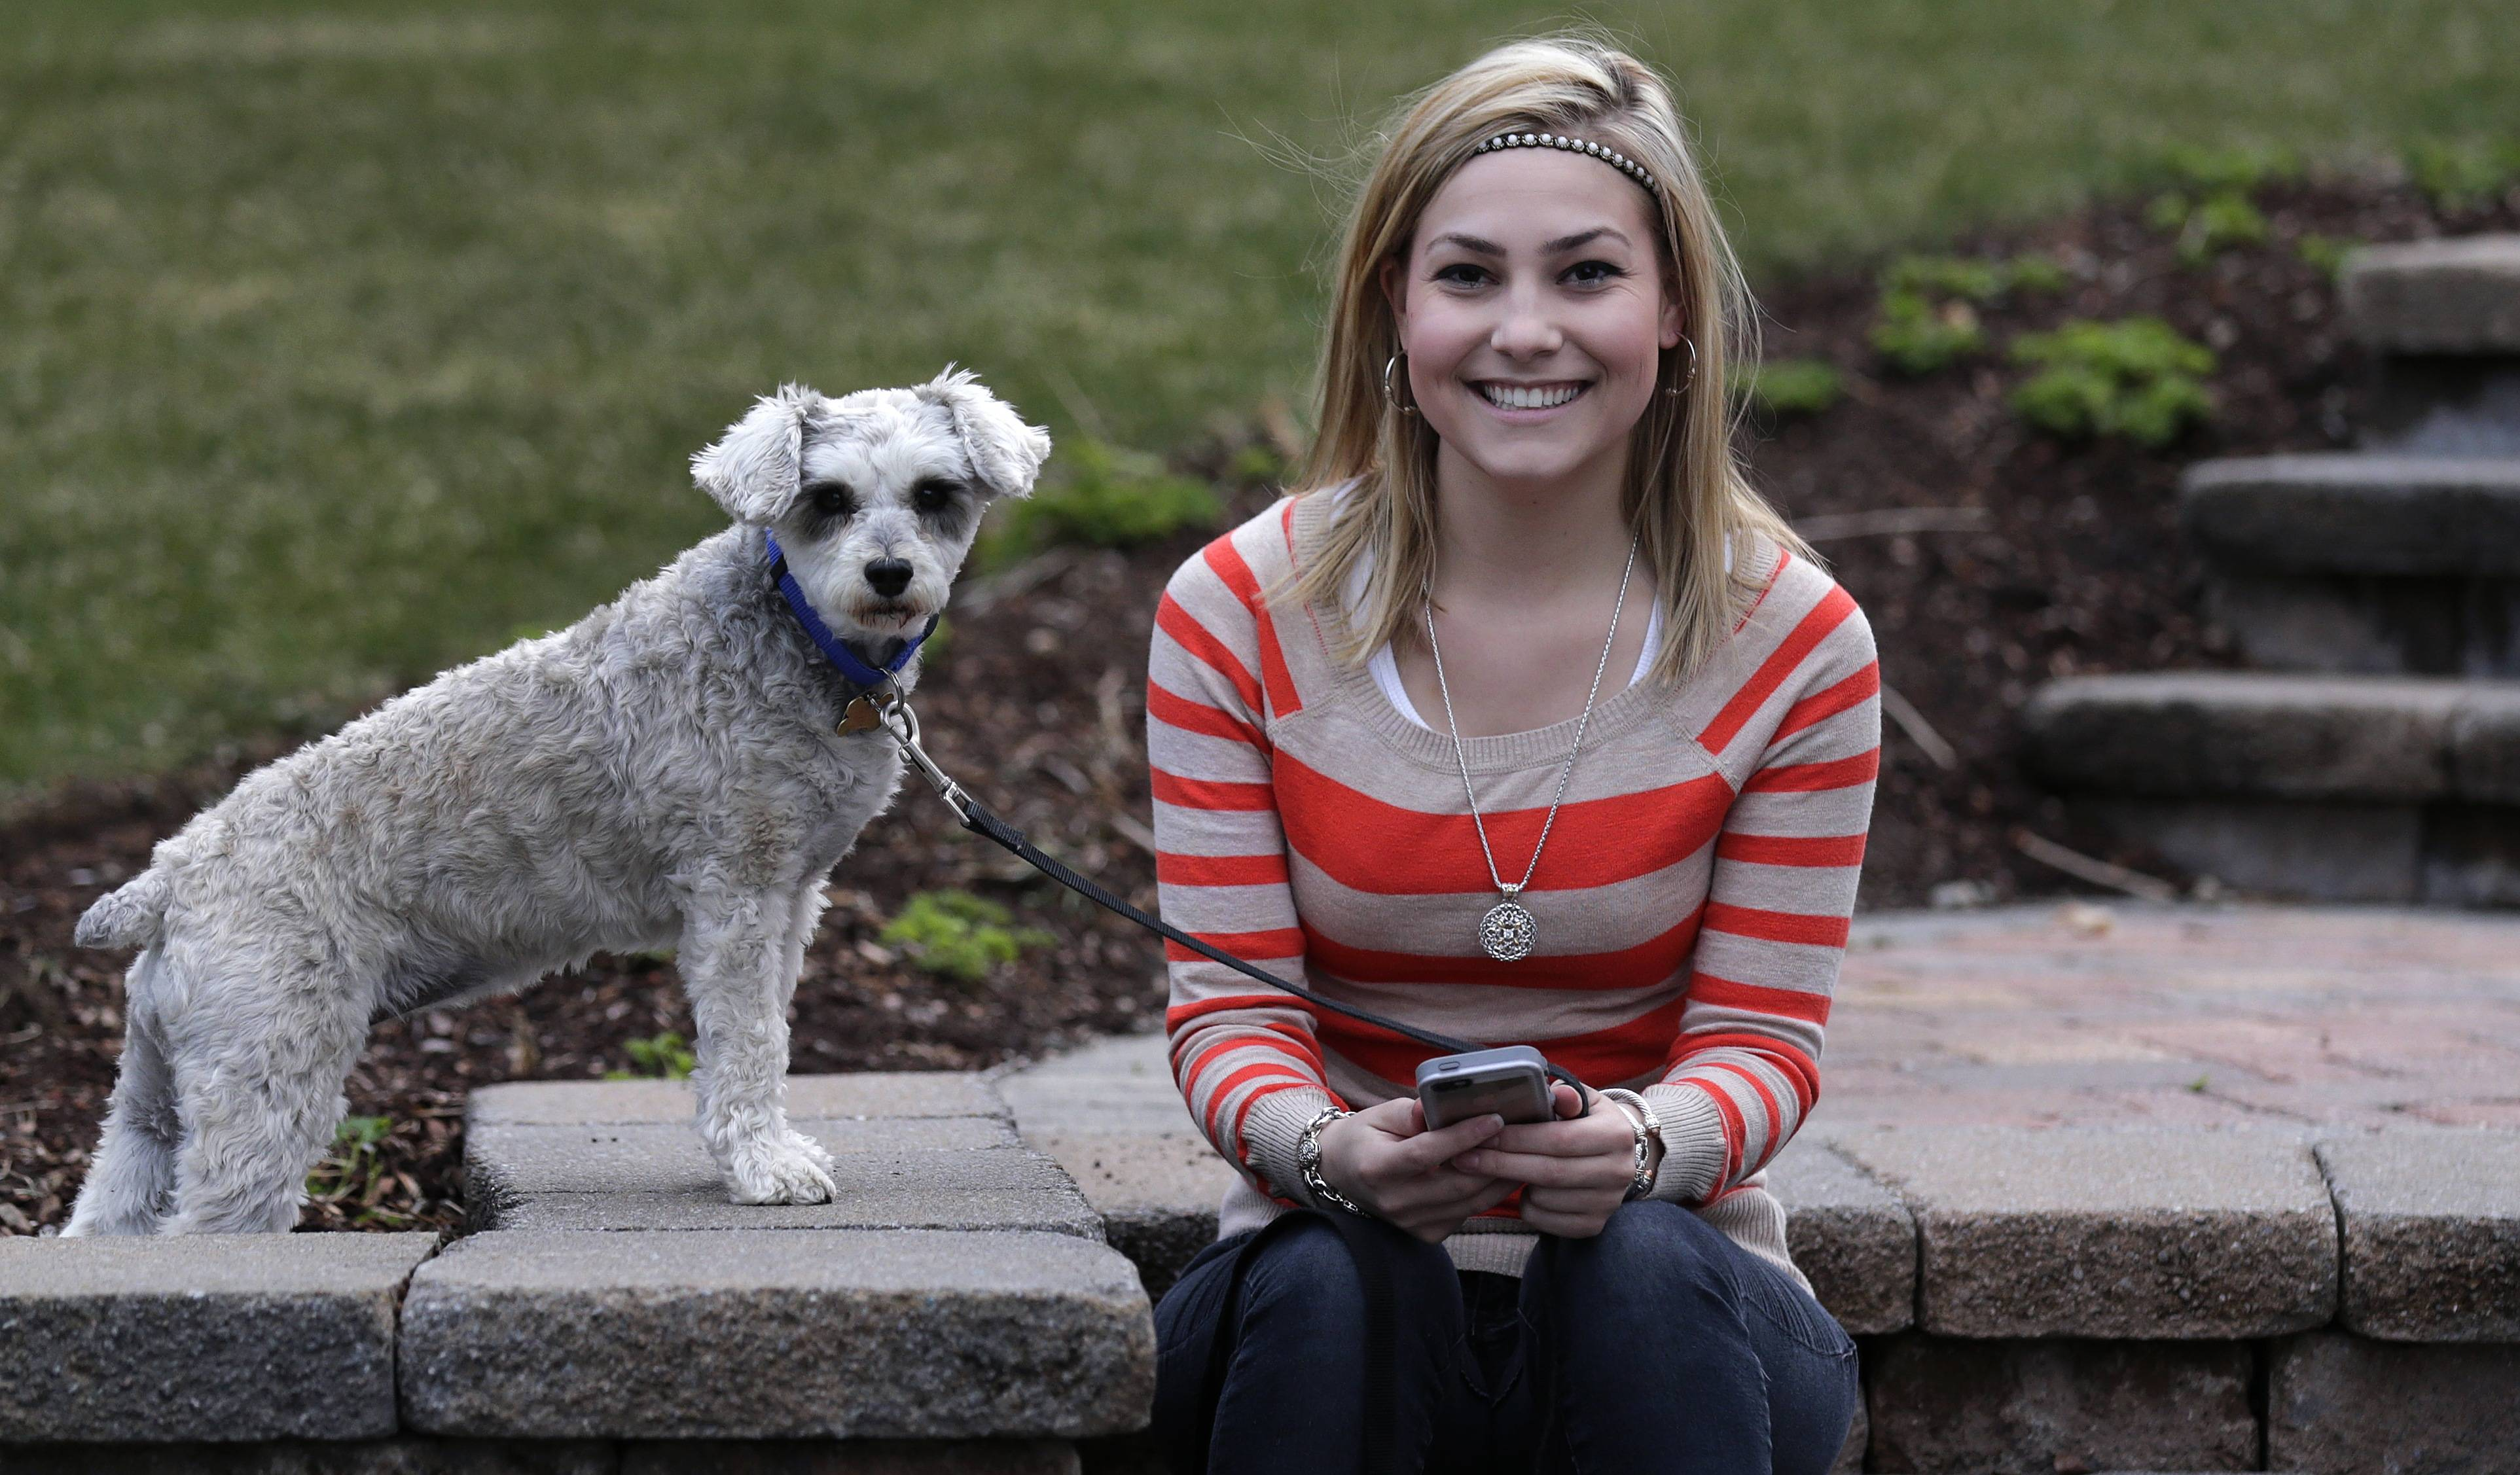 Associated PressIn this April 23, 2014 photo, Melissa Ellard with her dog, Nike, in Foxborough, Mass. Ellard says she wouldn't have gone on a date in the past six months were it not for Hinge, a dating app whose promise hinges on its ability to hook you up with friends of friends.